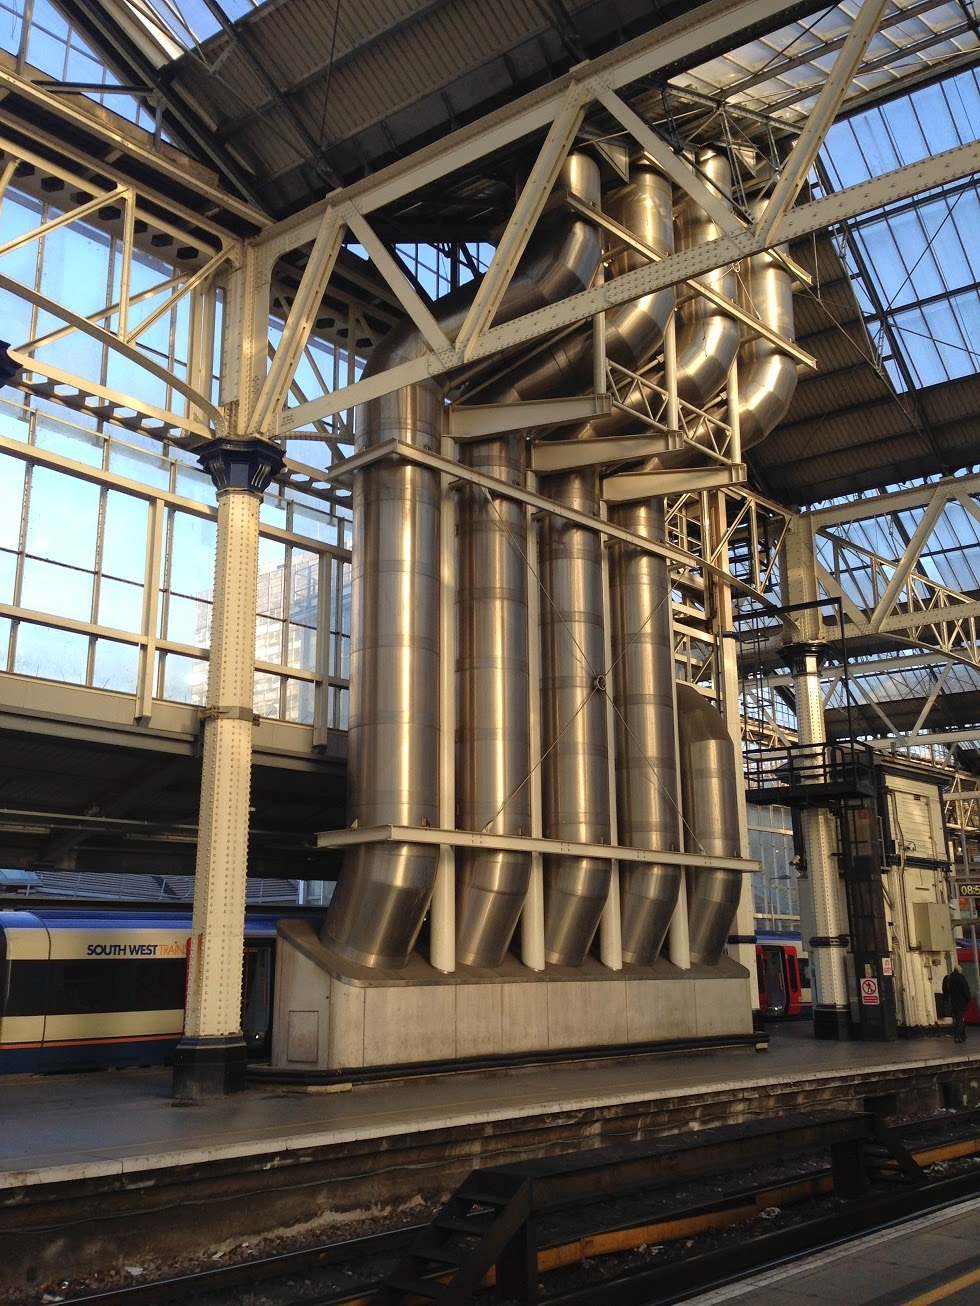 Industrial architecture, Waterloo station, London